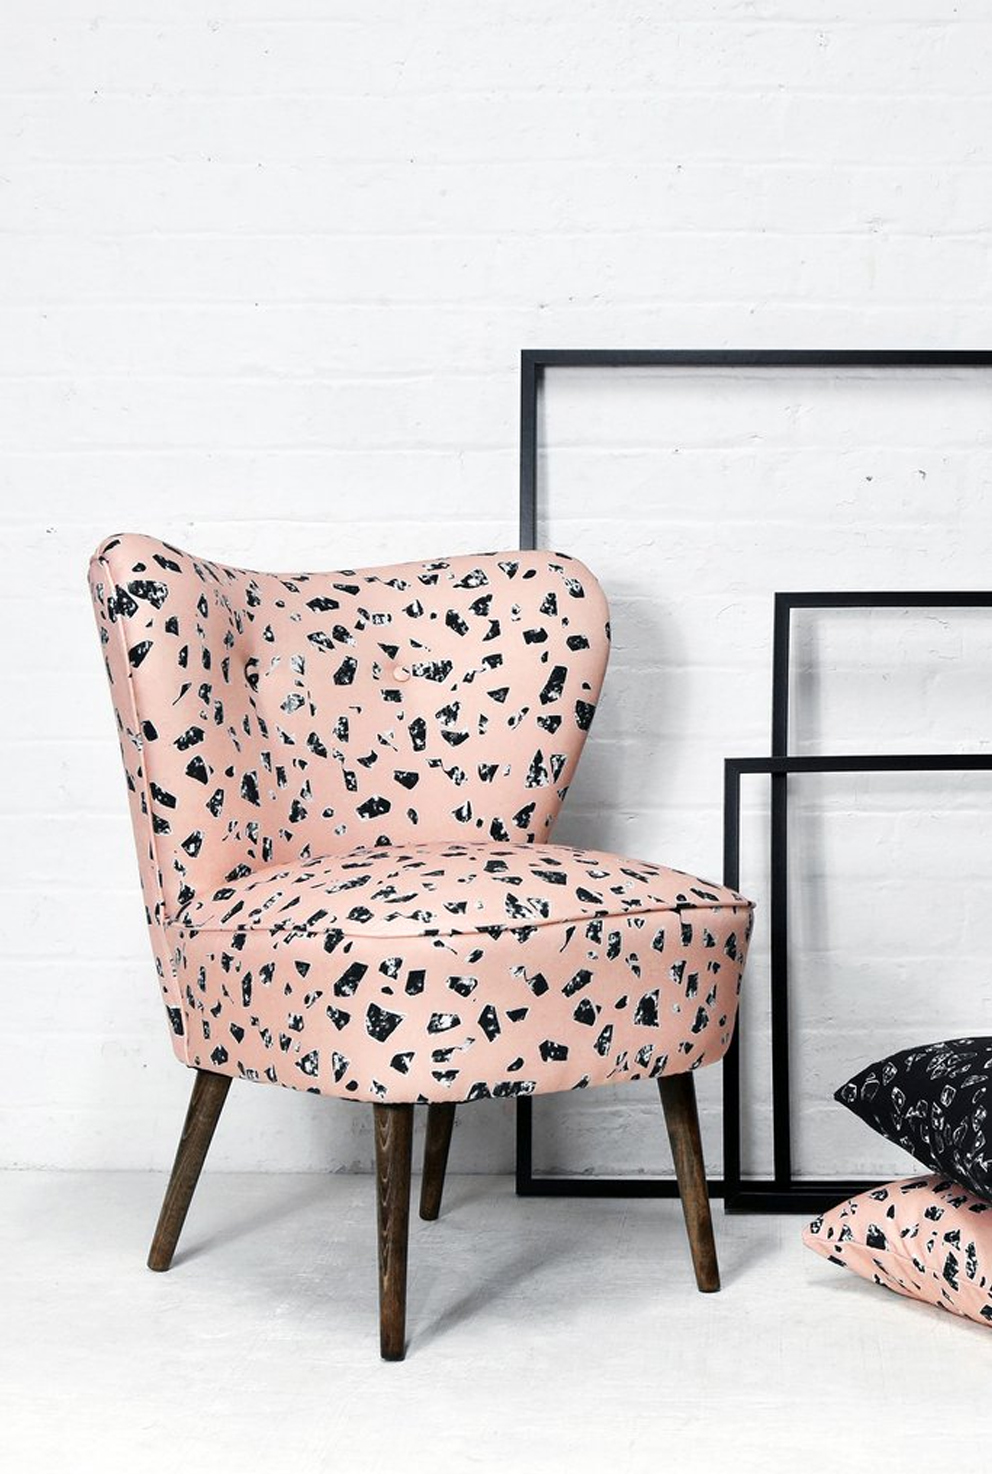 French For Pineapple Blog - Florrie + Bill The Studio Collection Pink Cocktail Chair Terrazzo